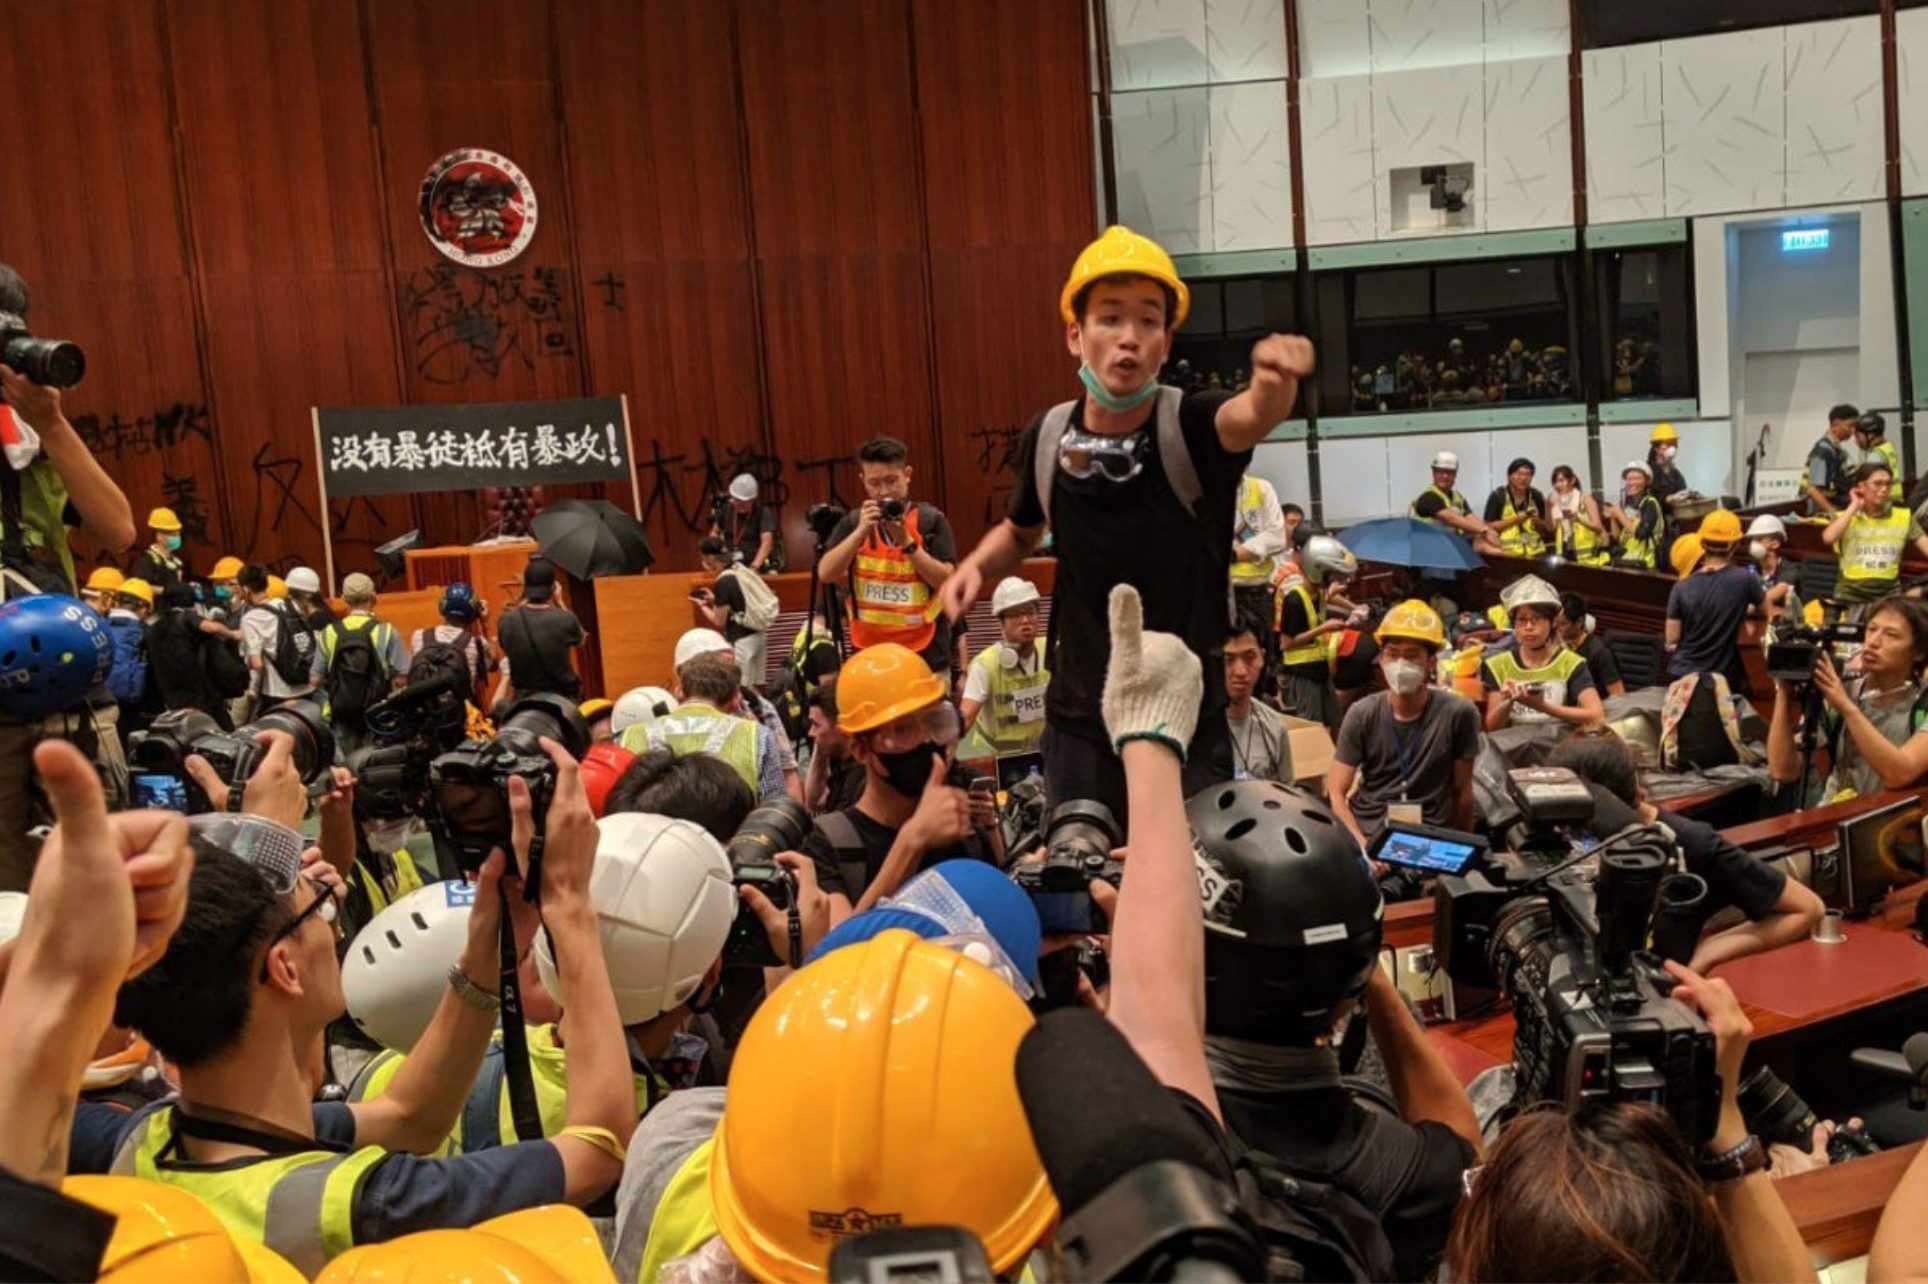 Unmasked Hong Kong protester says from US: we want 'full democracy' - Photo: Sum Lok-kei